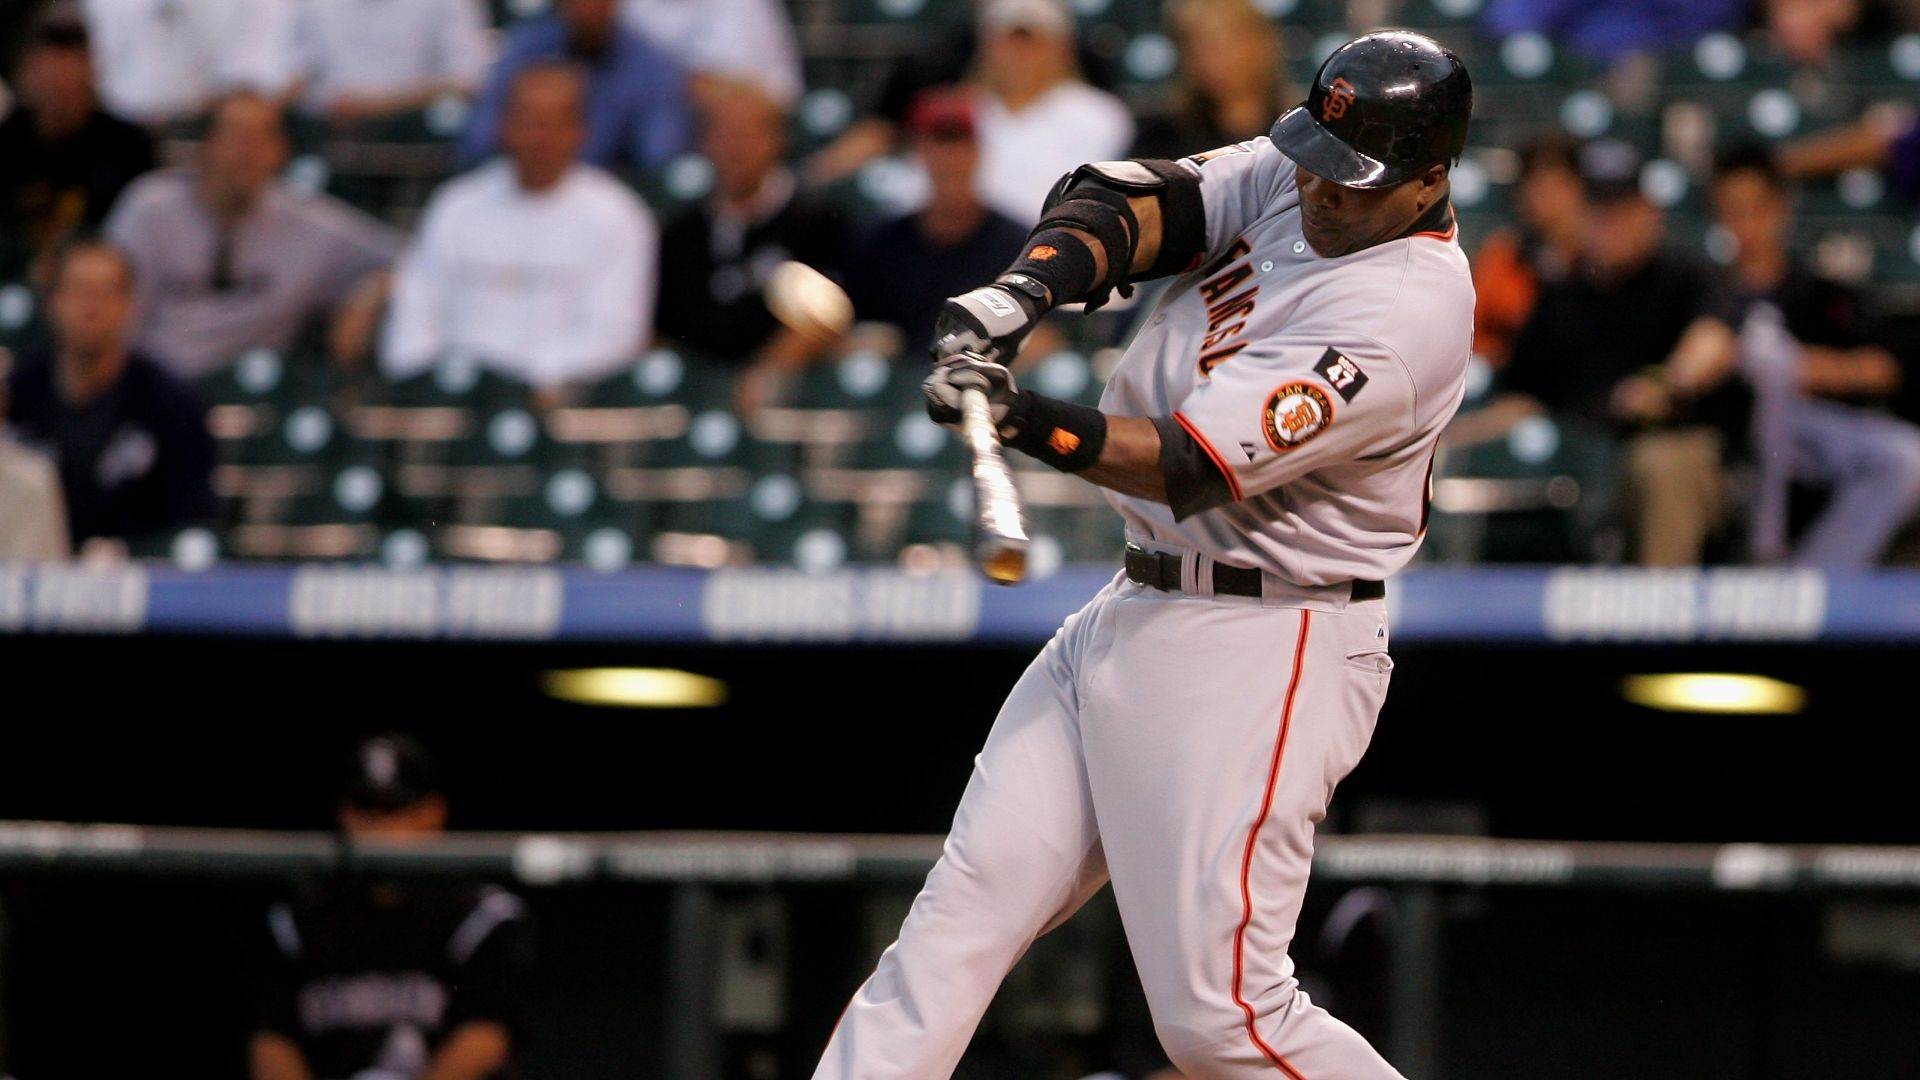 On this date: Bonds goes yard for the final time